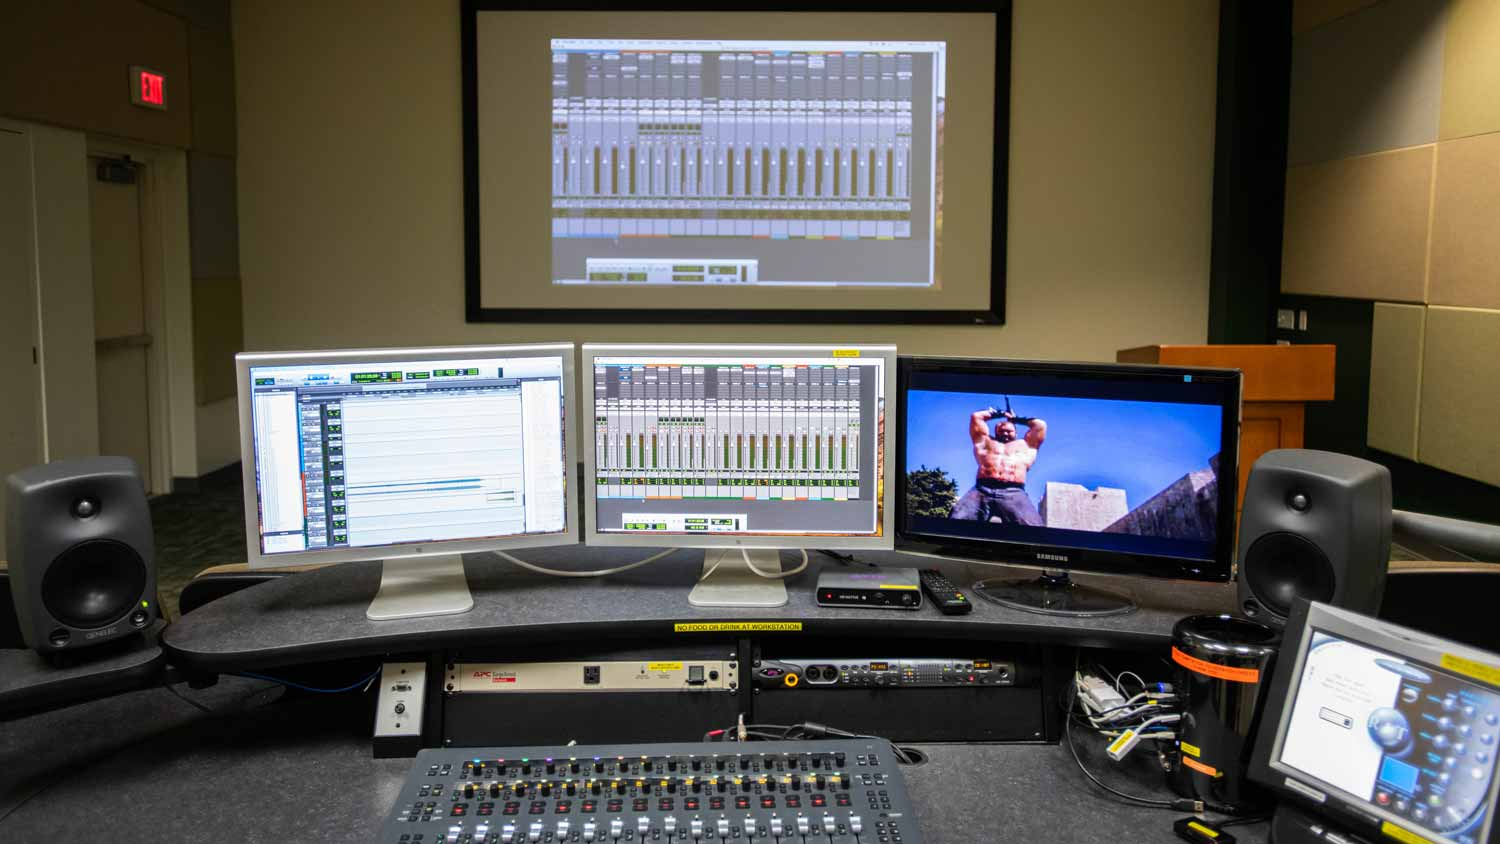 Sound mixing workstation